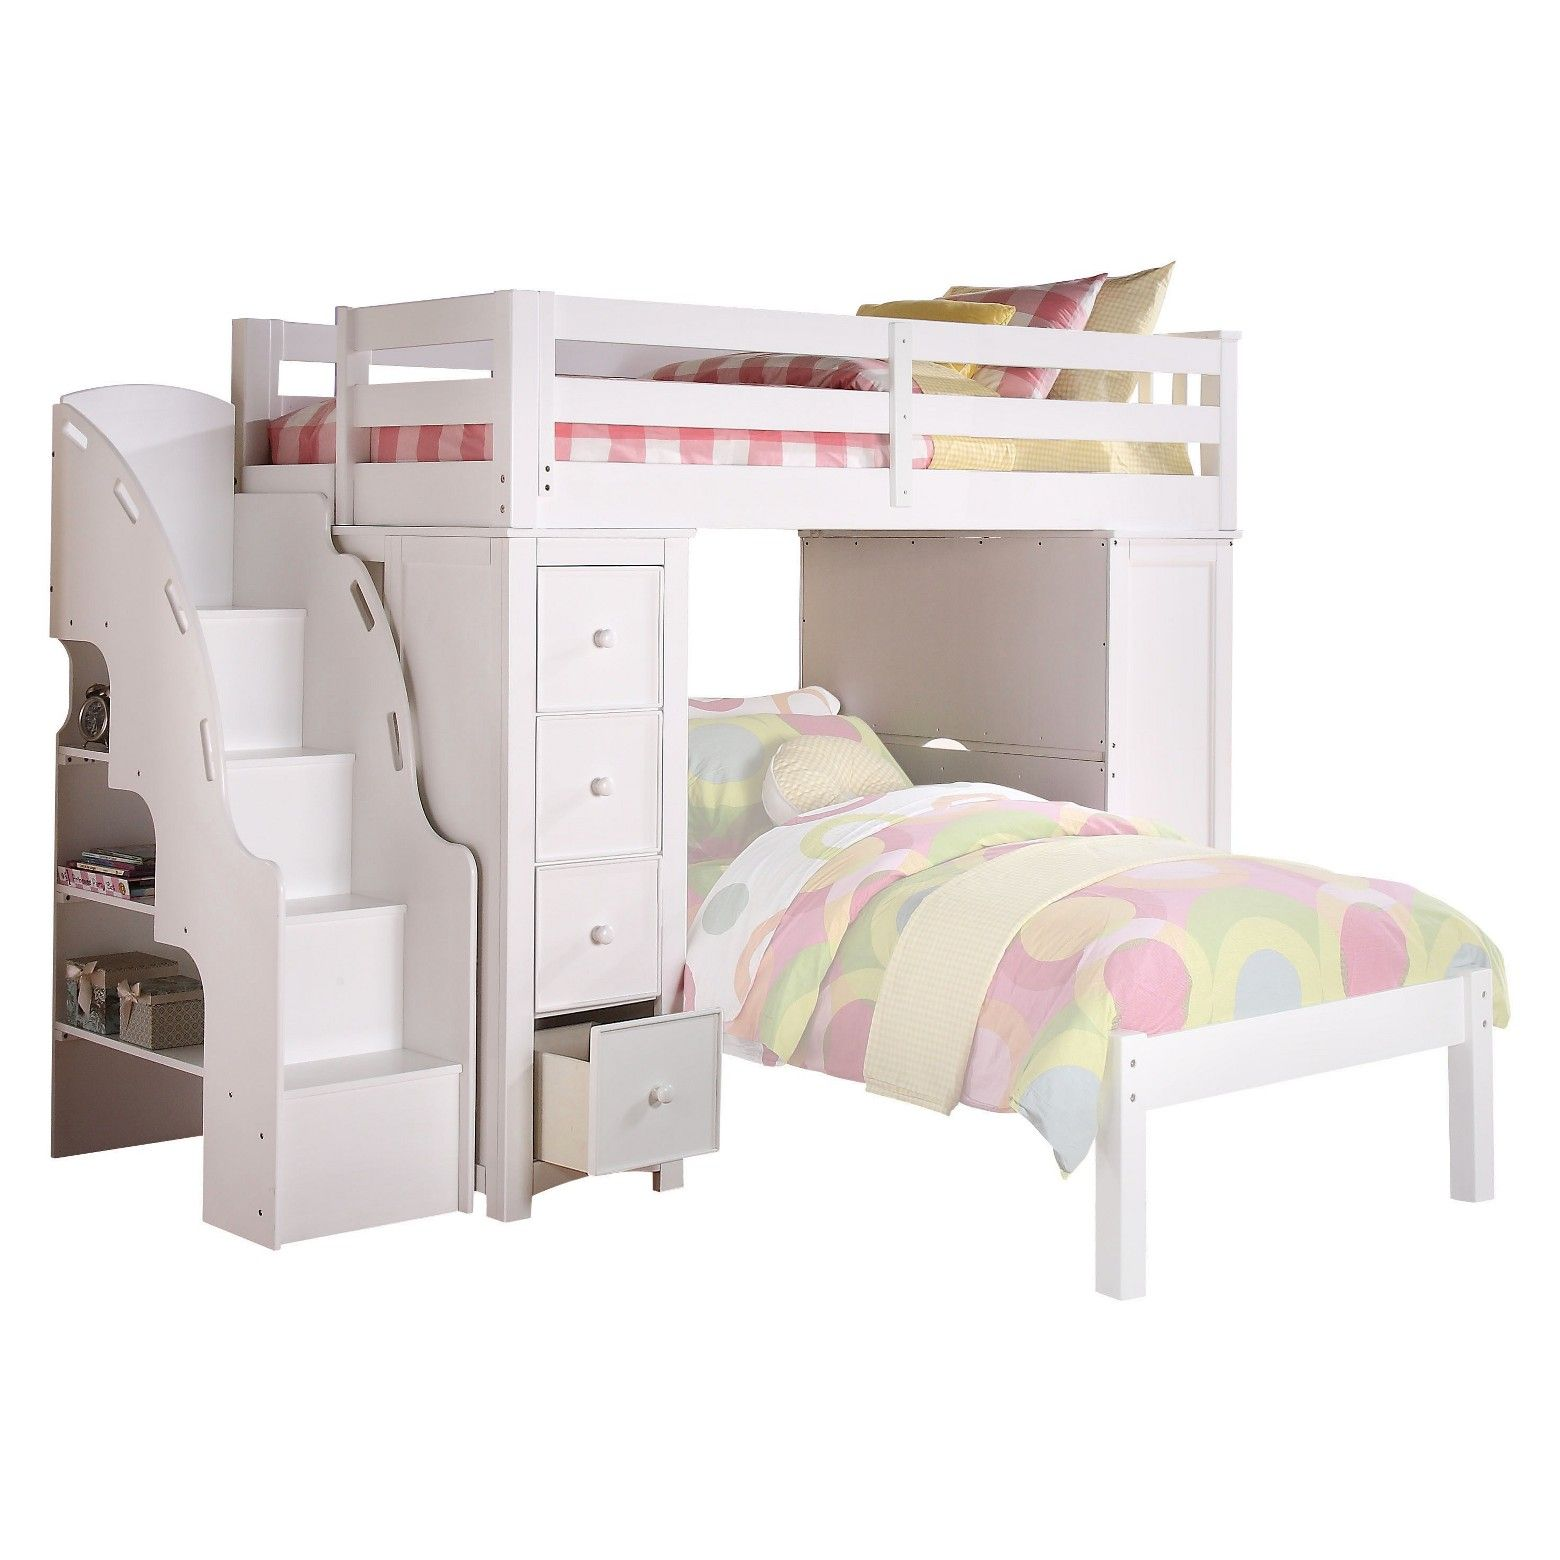 Boys' loft bed with slide (box 2)  Freya Kids Loft Bed with Bookcase  WhiteTwin  Acme